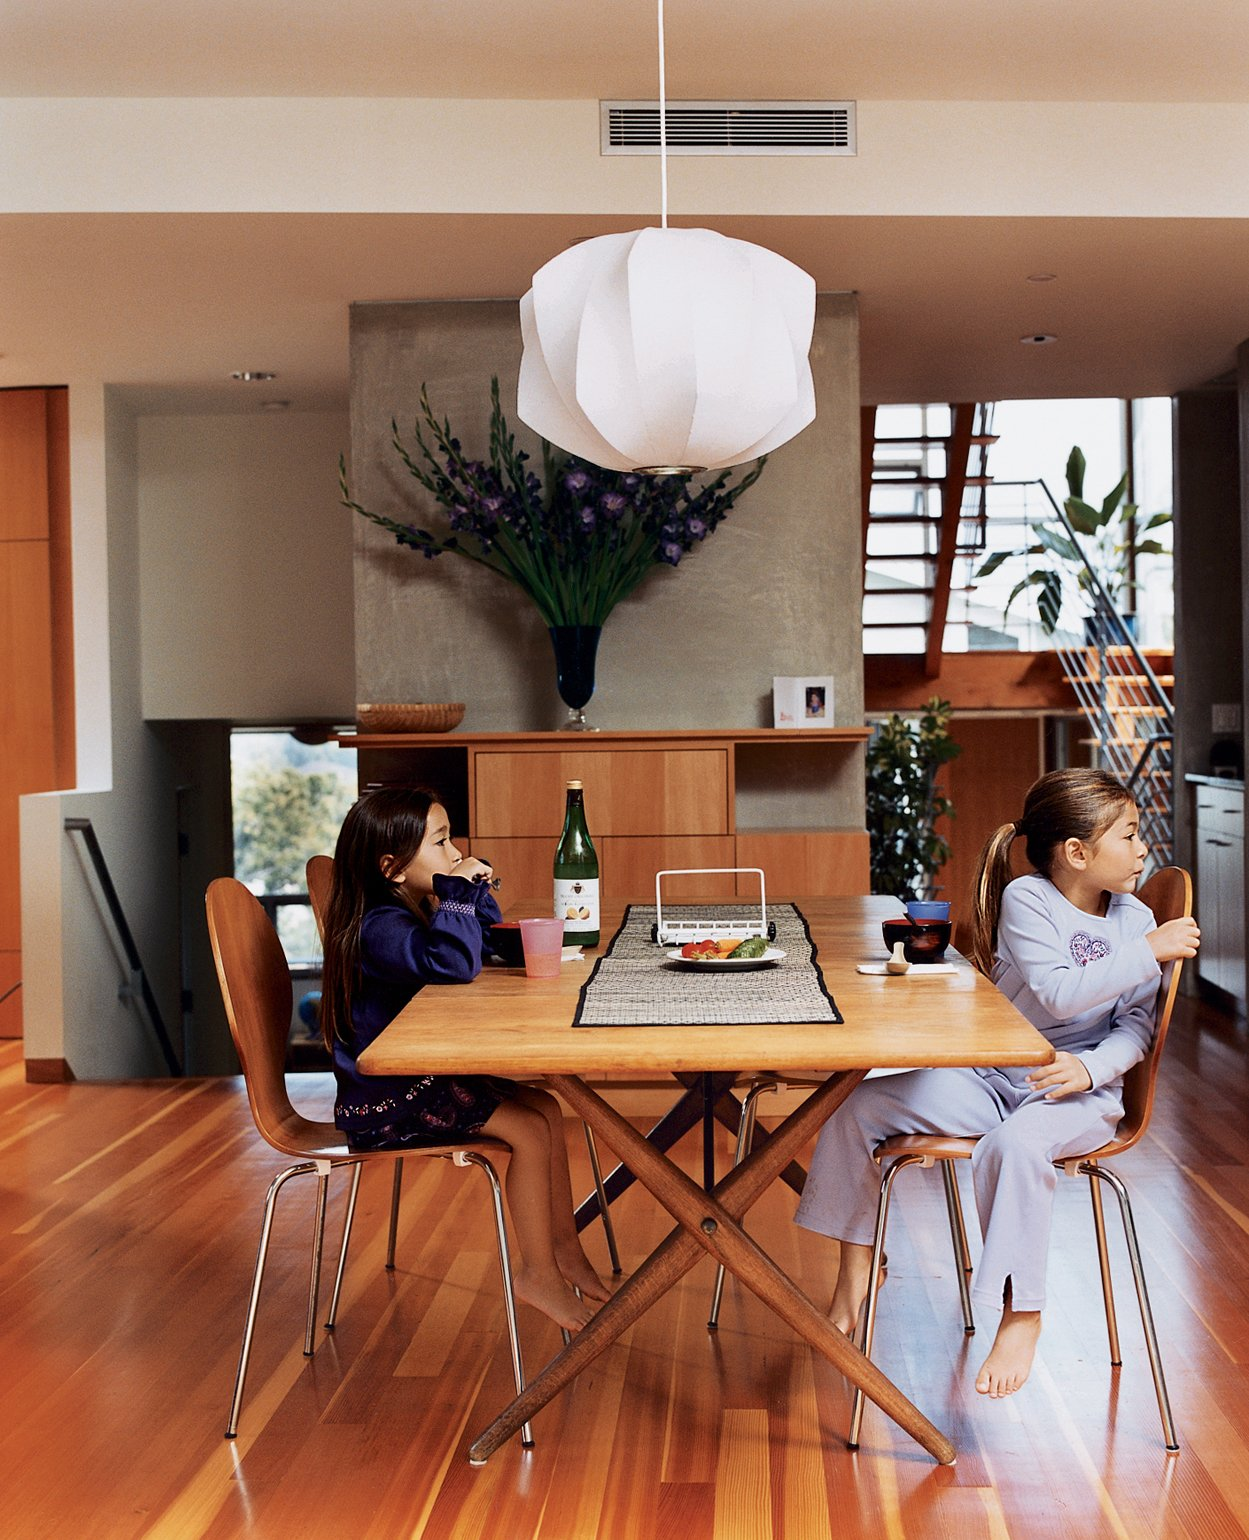 Dining Room, Pendant Lighting, Chair, Table, and Medium Hardwood Floor Kalia and Olivia in the dining room (the Danish dining table was acquired by Jesse's parents in the mid-'70s, the dining chairs are by Arne Jacobsen, and the light fixture is by George Nelson).  Ways to Decorate with Arne Jacobsen Furniture by Erika Heet from Two Houses Are Better Than One